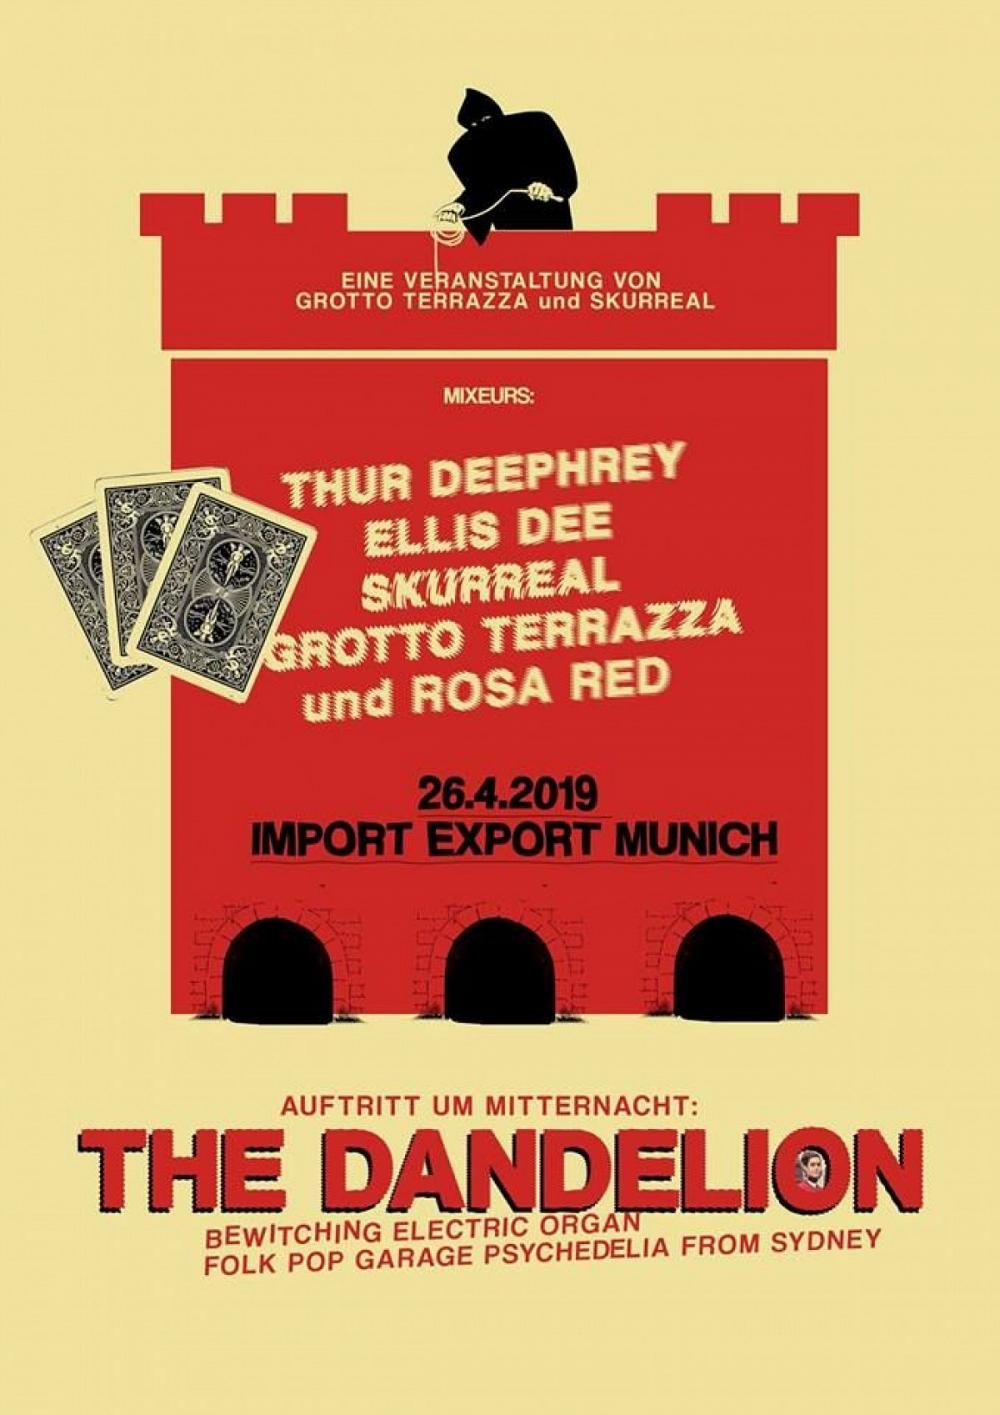 Tapefruit Konzert: The Dandelion | 26.04.2019 @ Import Export